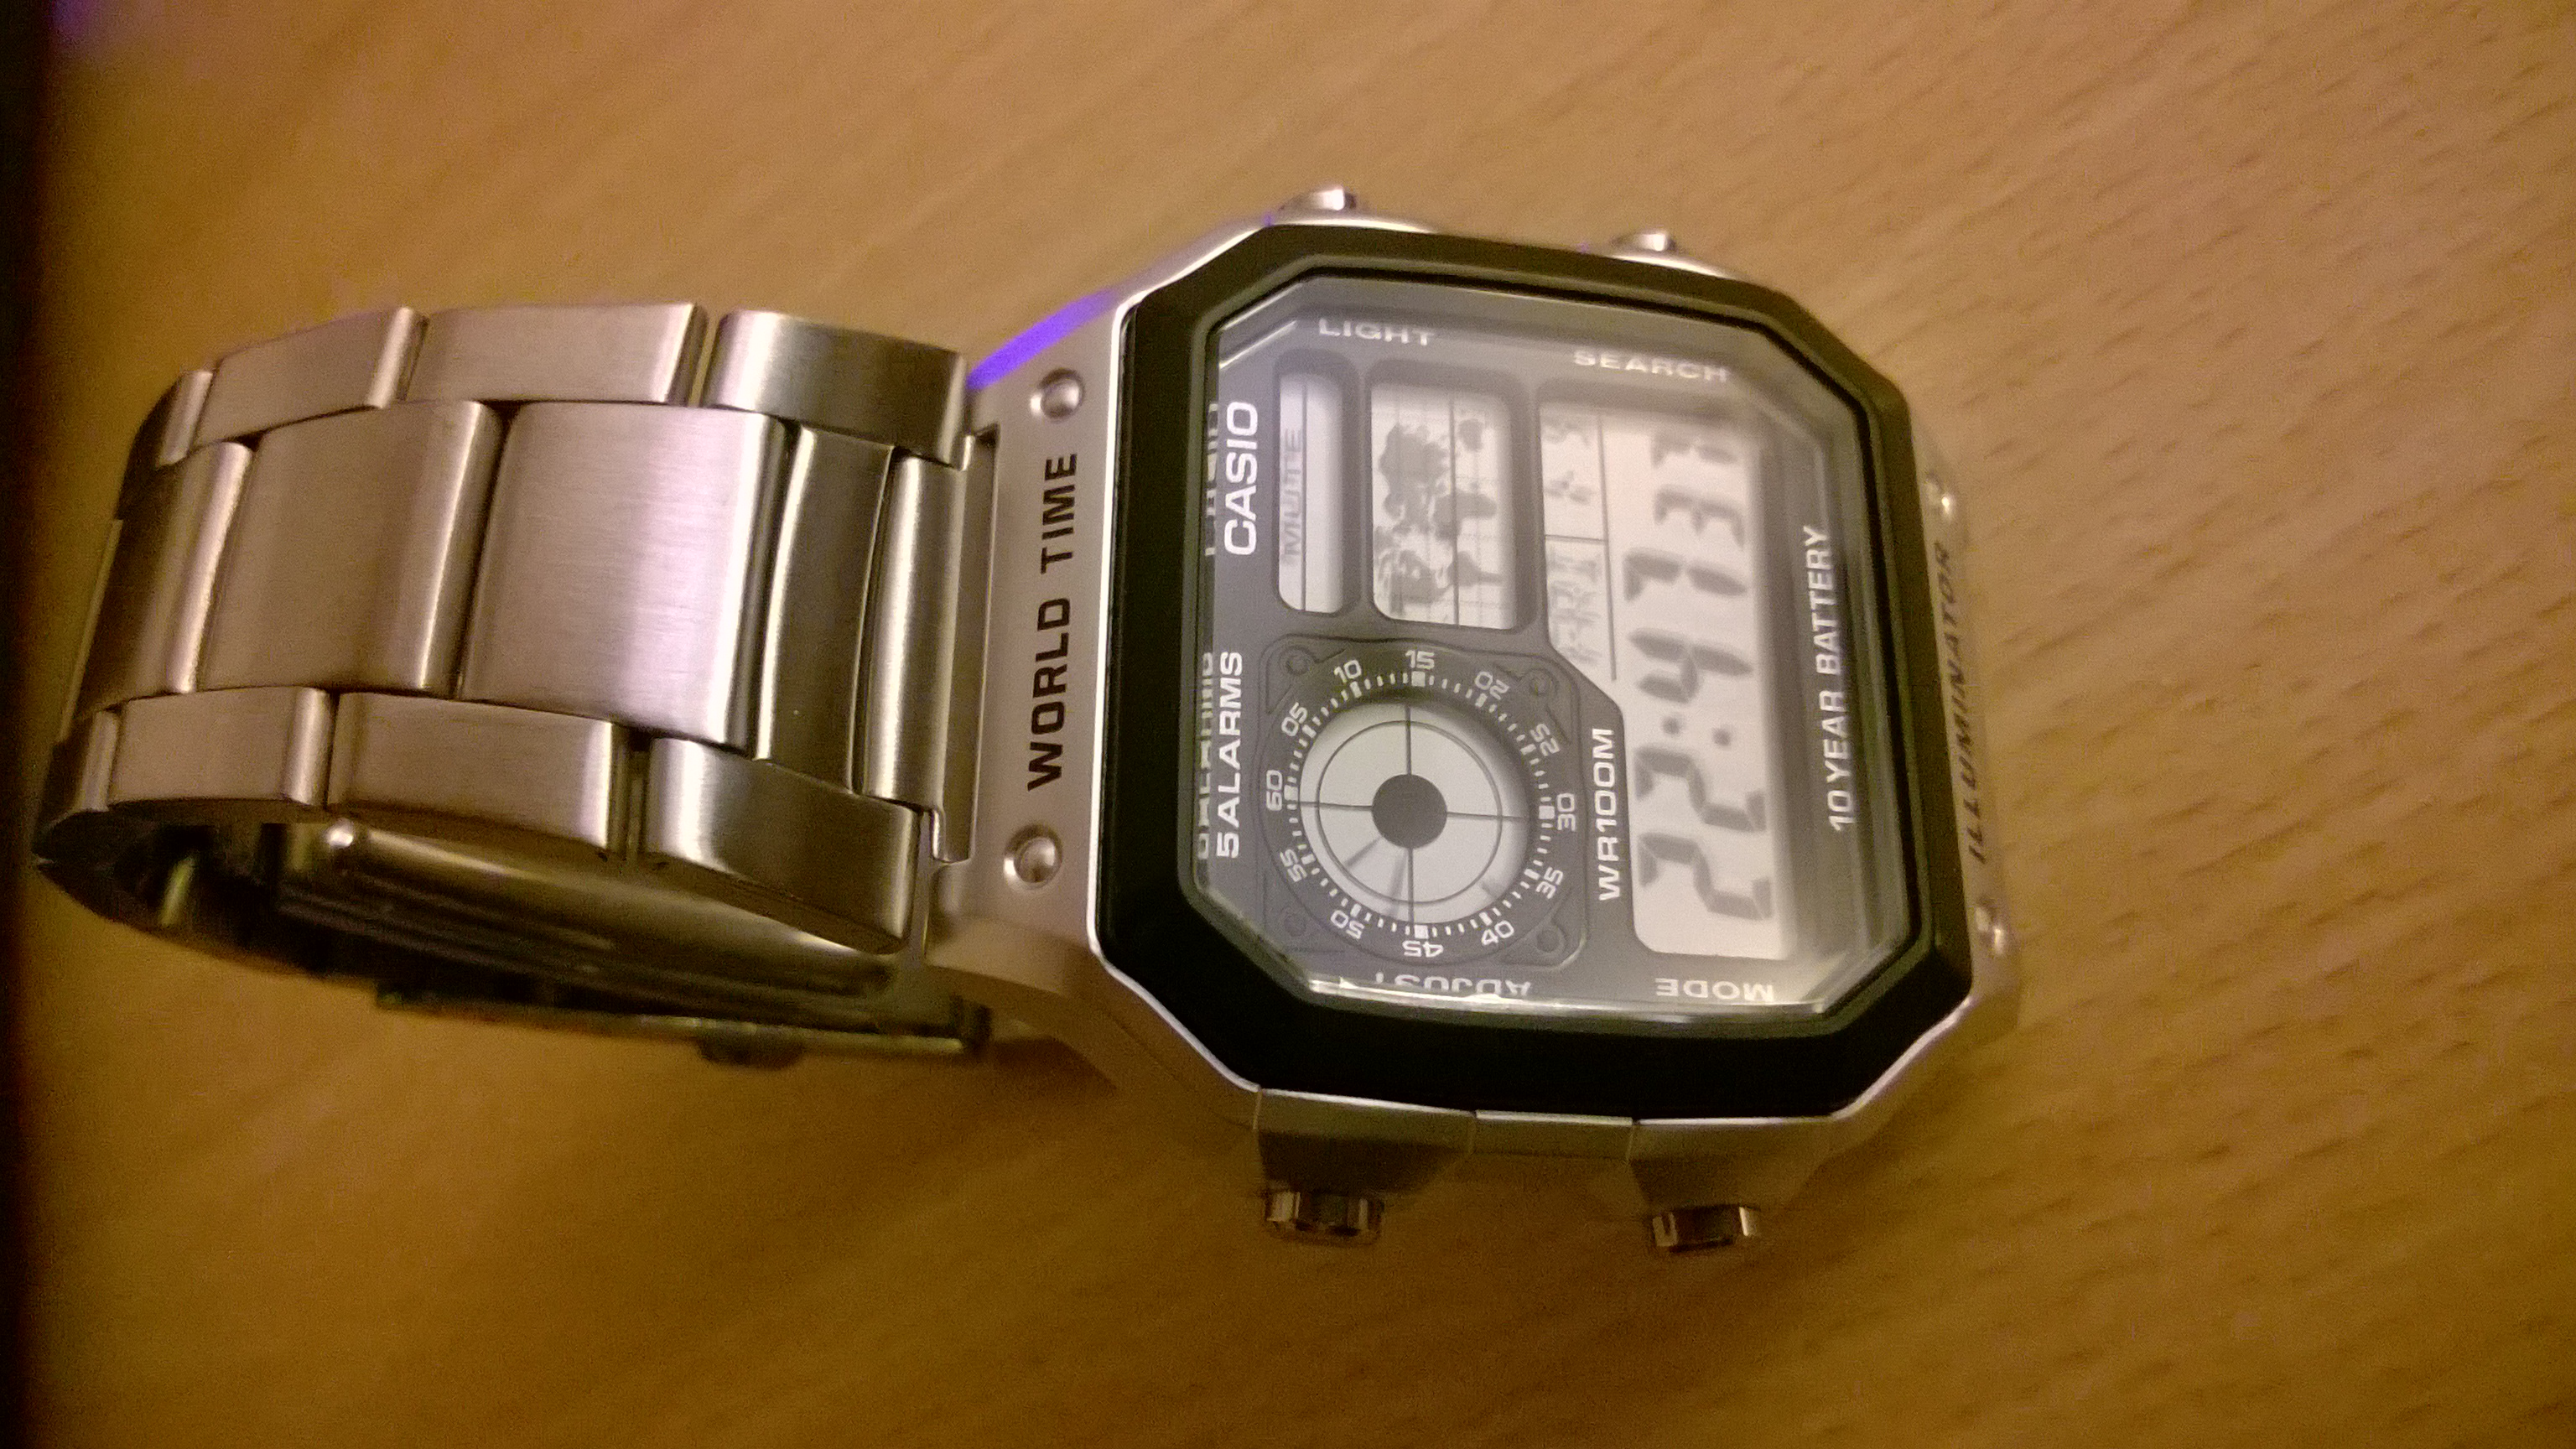 Gents Casio World Time Alarm Chronograph Watch Ae 1200whd 1avef 1000wd Original